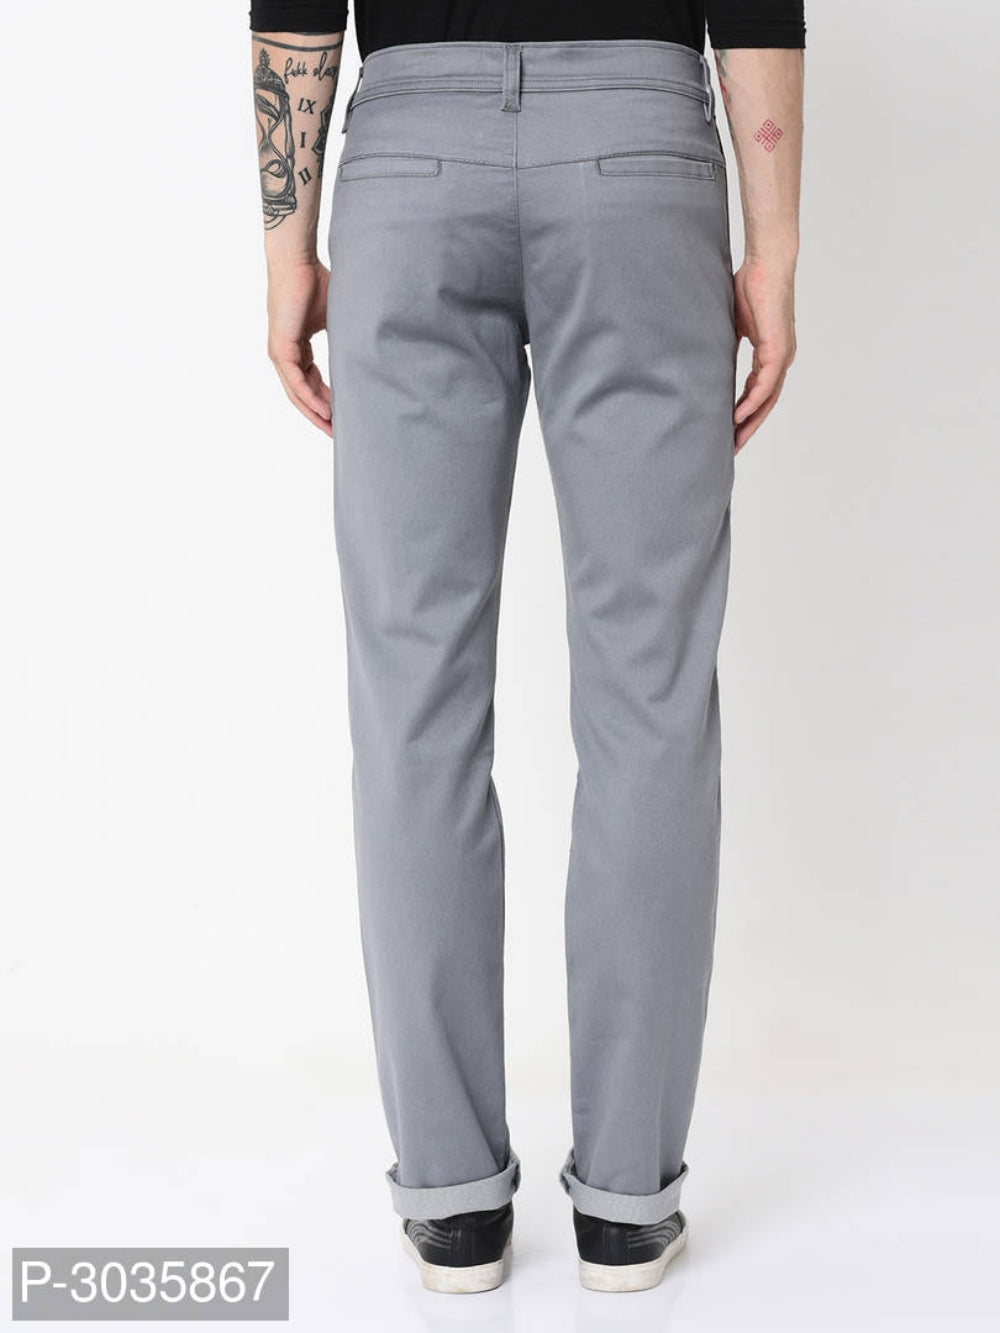 Ash Grey Side Tape Jeans